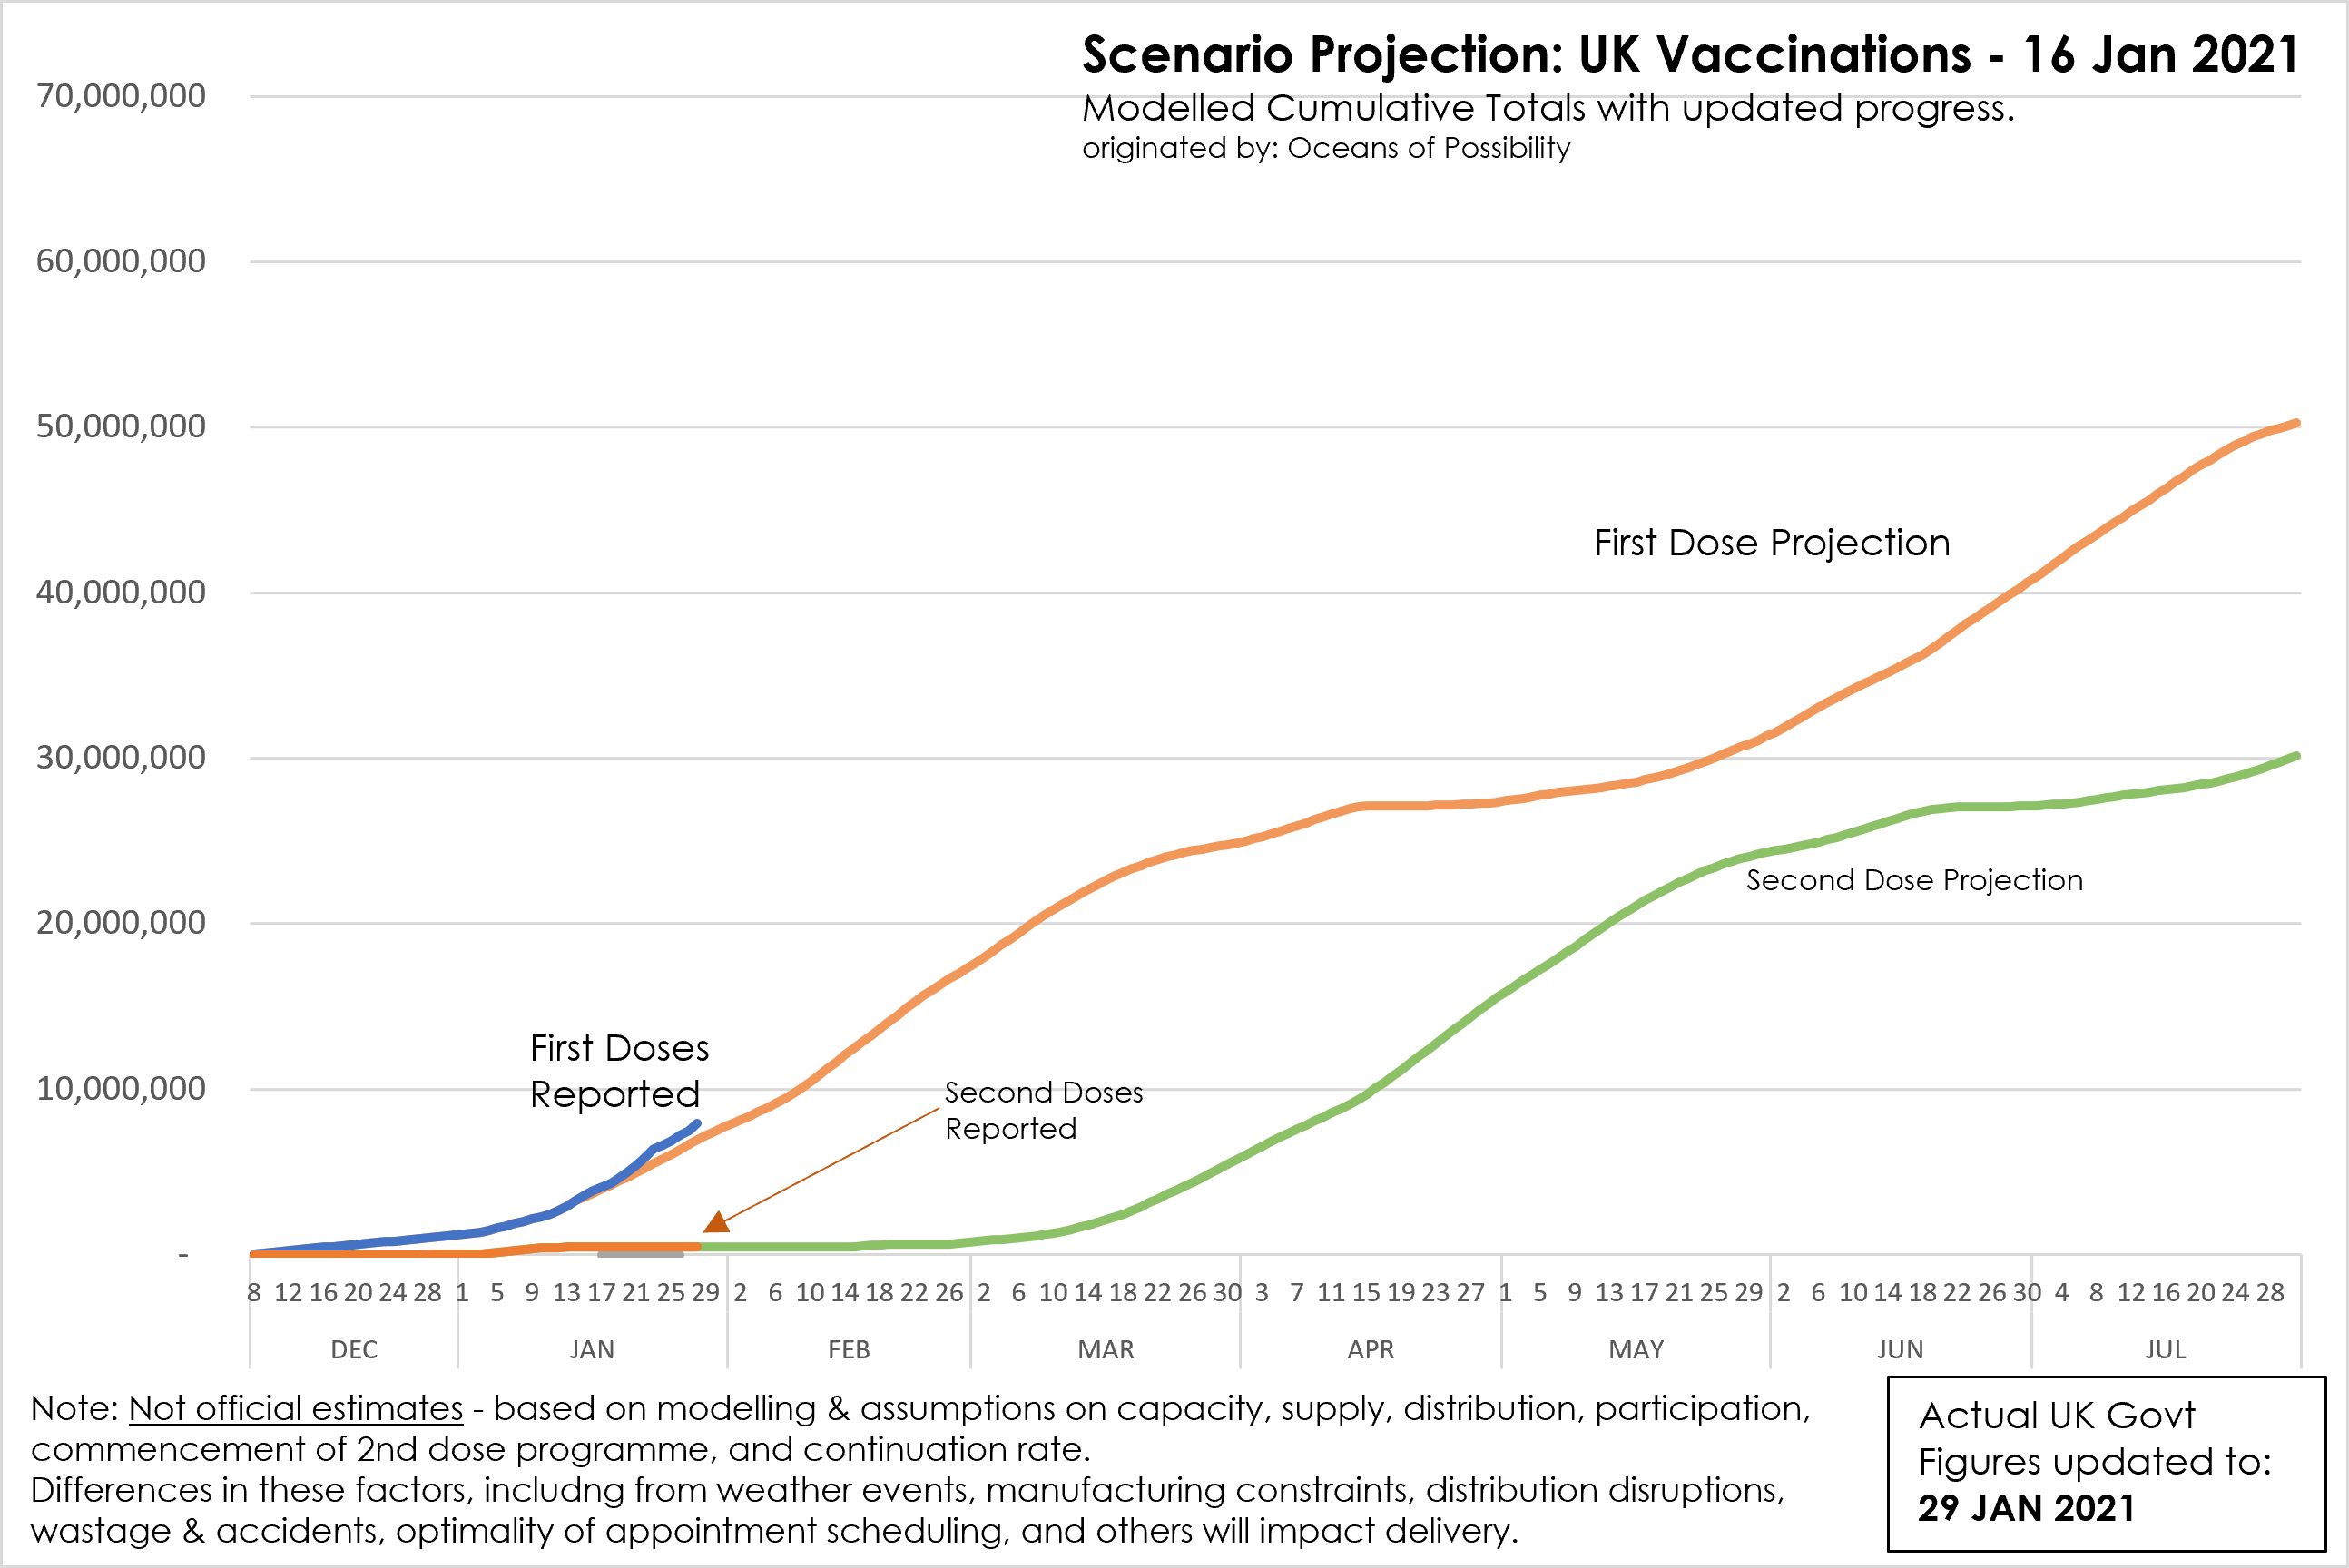 Scenario Projections UK Vaccine Rollout and Government Actual Figures at 29 Jan 2021